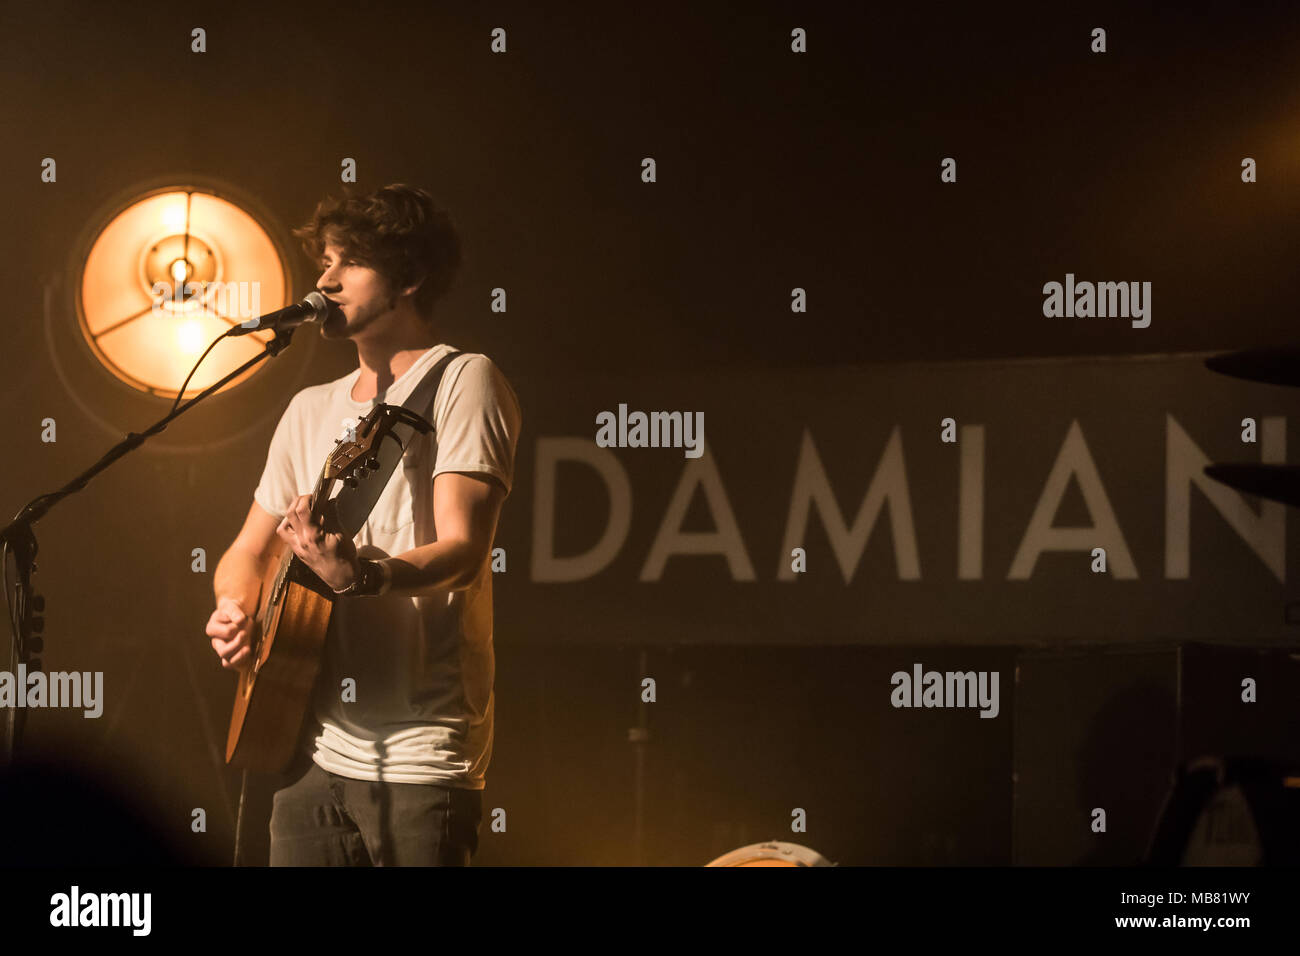 The Swiss musician Damian Lynn live at the Schüür Lucerne, Switzerland - Stock Image